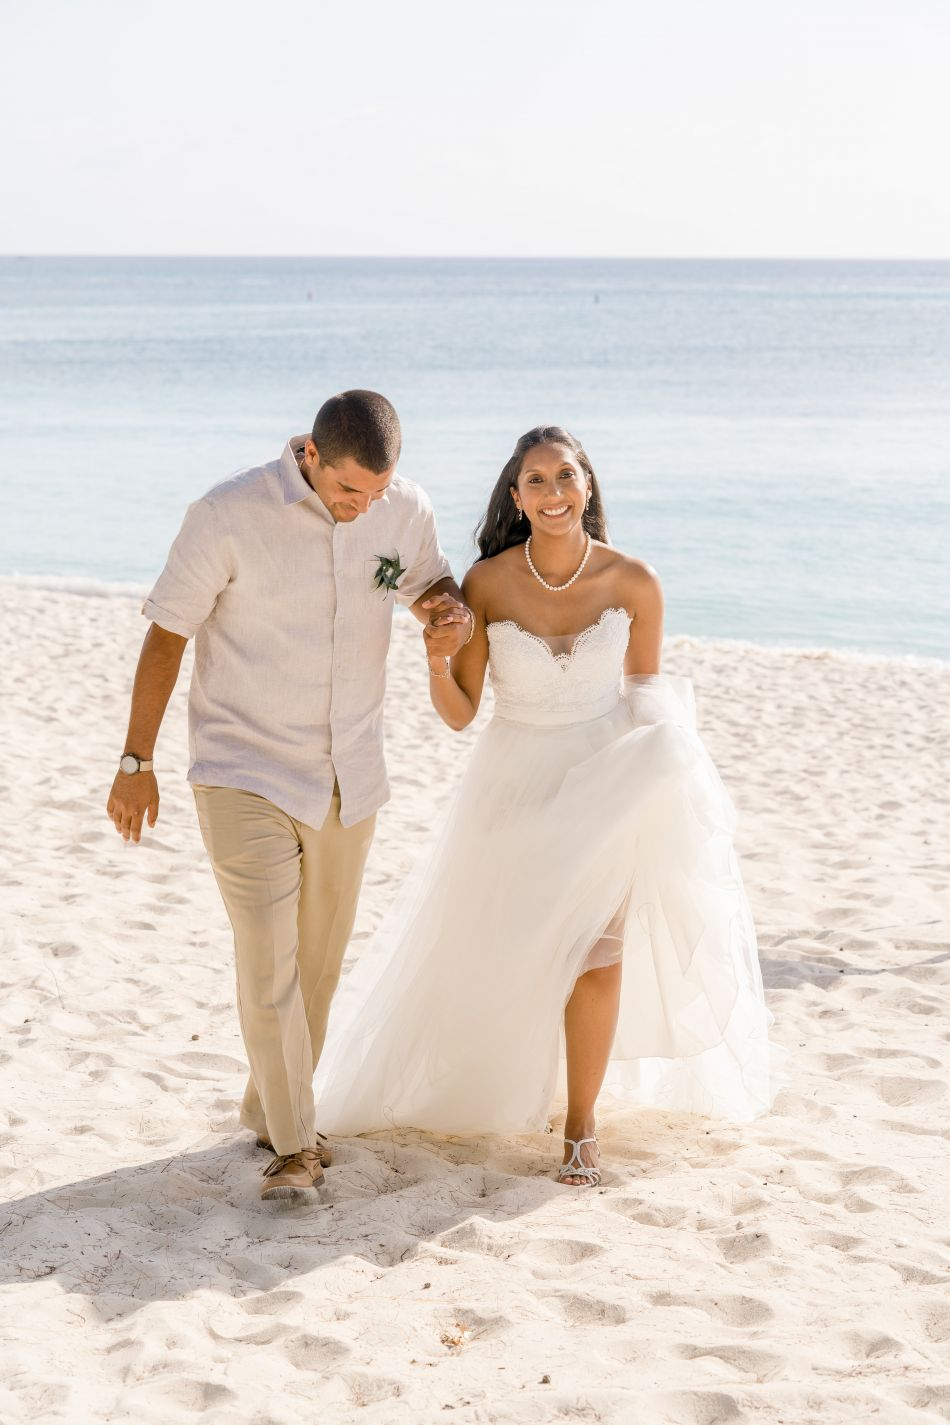 Waterfront Wedding Venue in the Cayman Islands Image 13